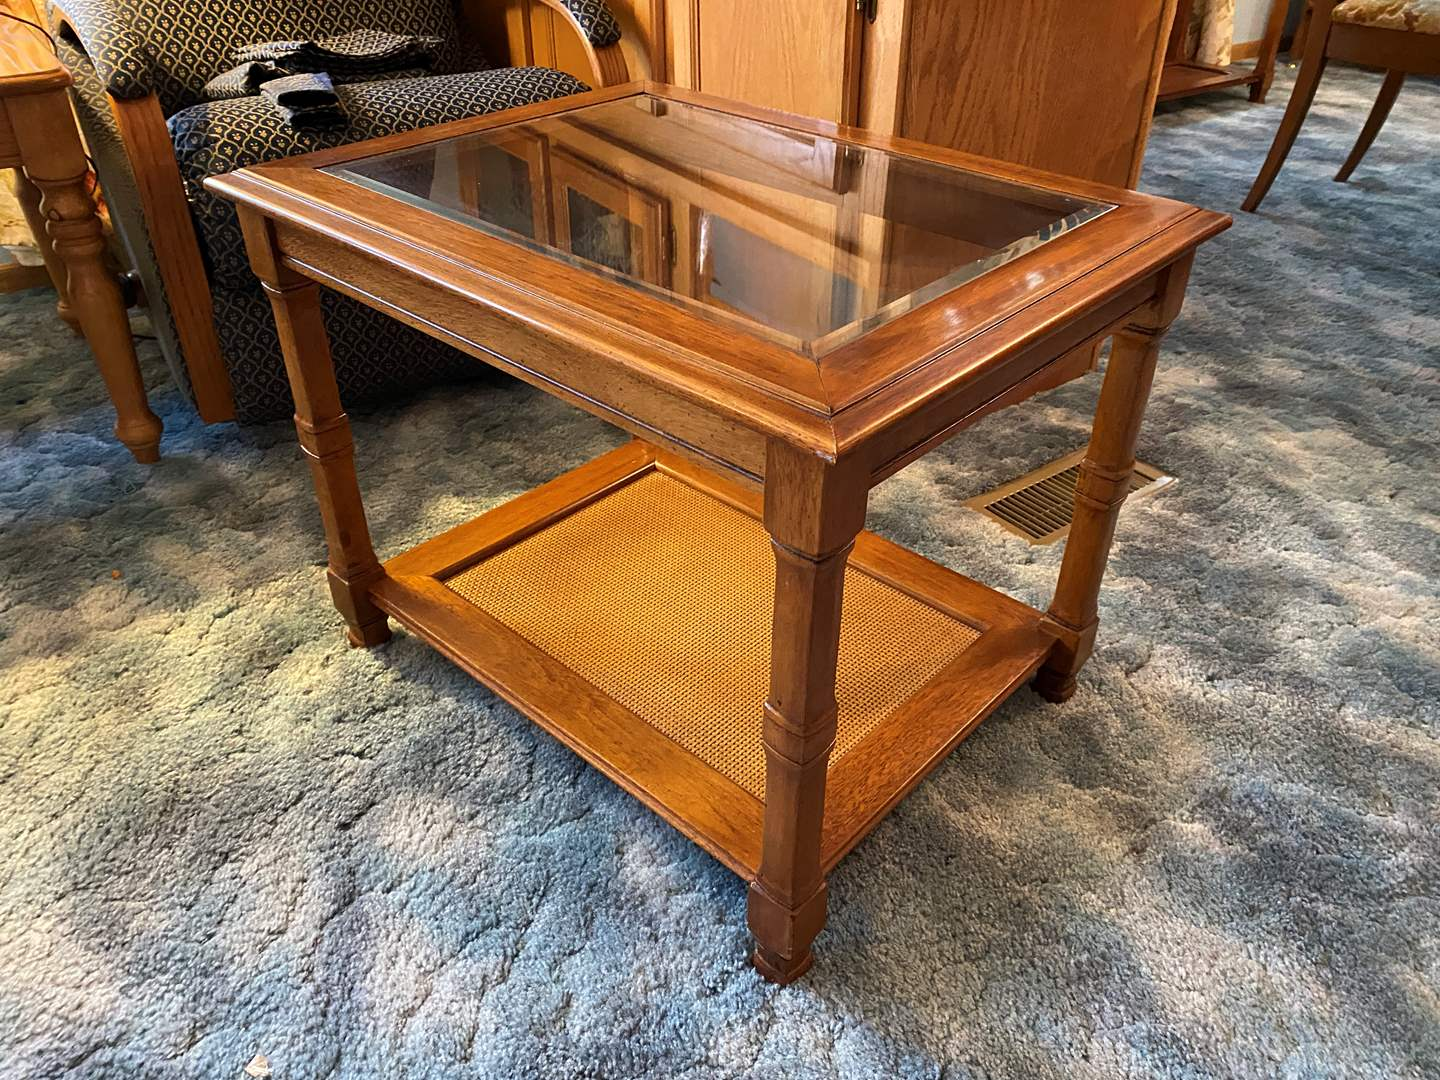 Lot # 17 - Wood Side Table w/ Glass Insert - (Matches Lot # 6) (main image)